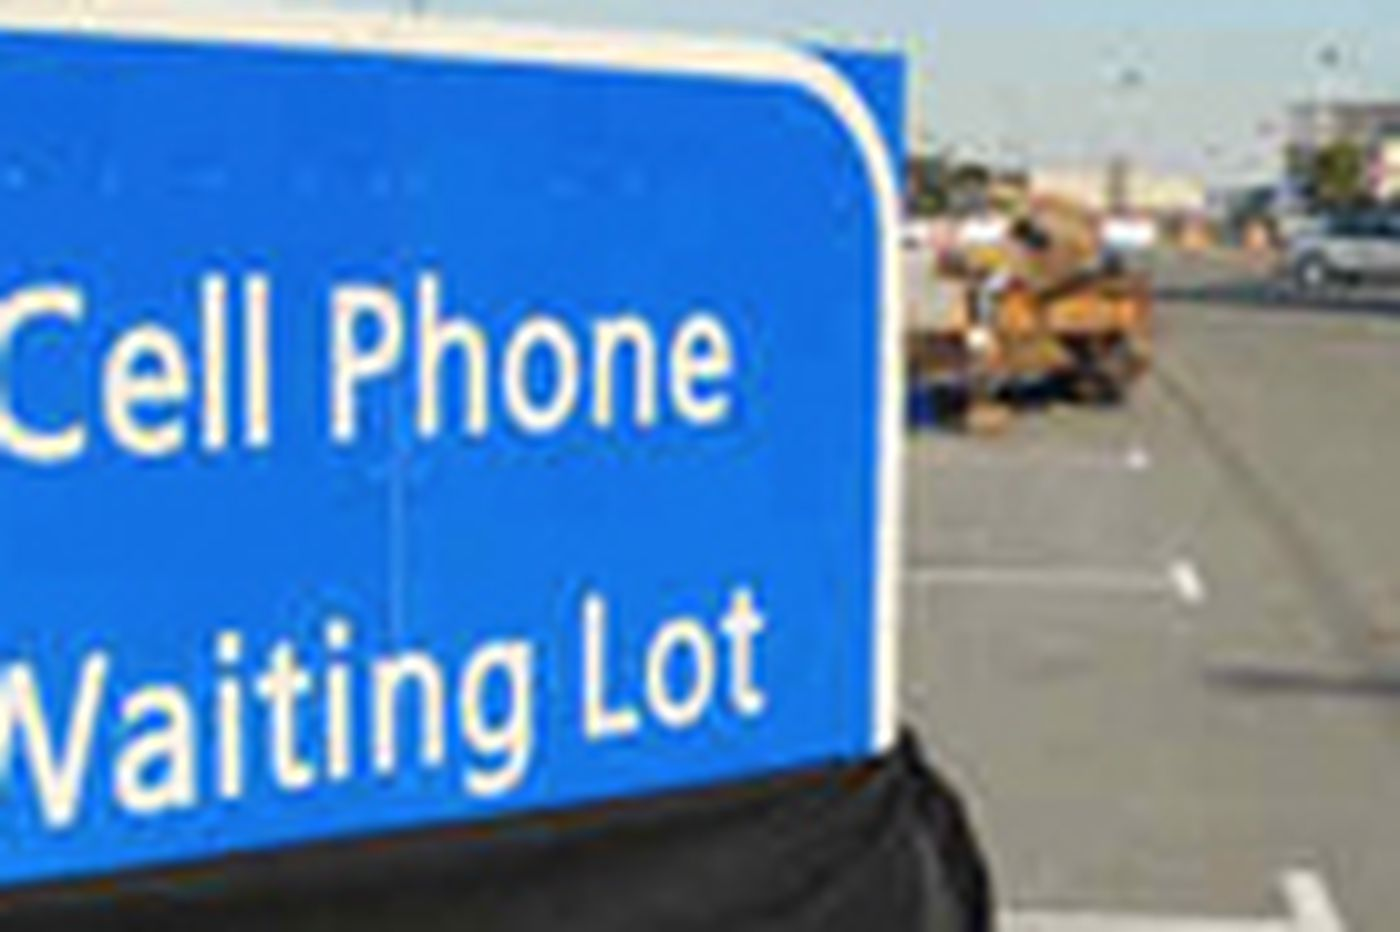 New airport cell-phone waiting lot to open